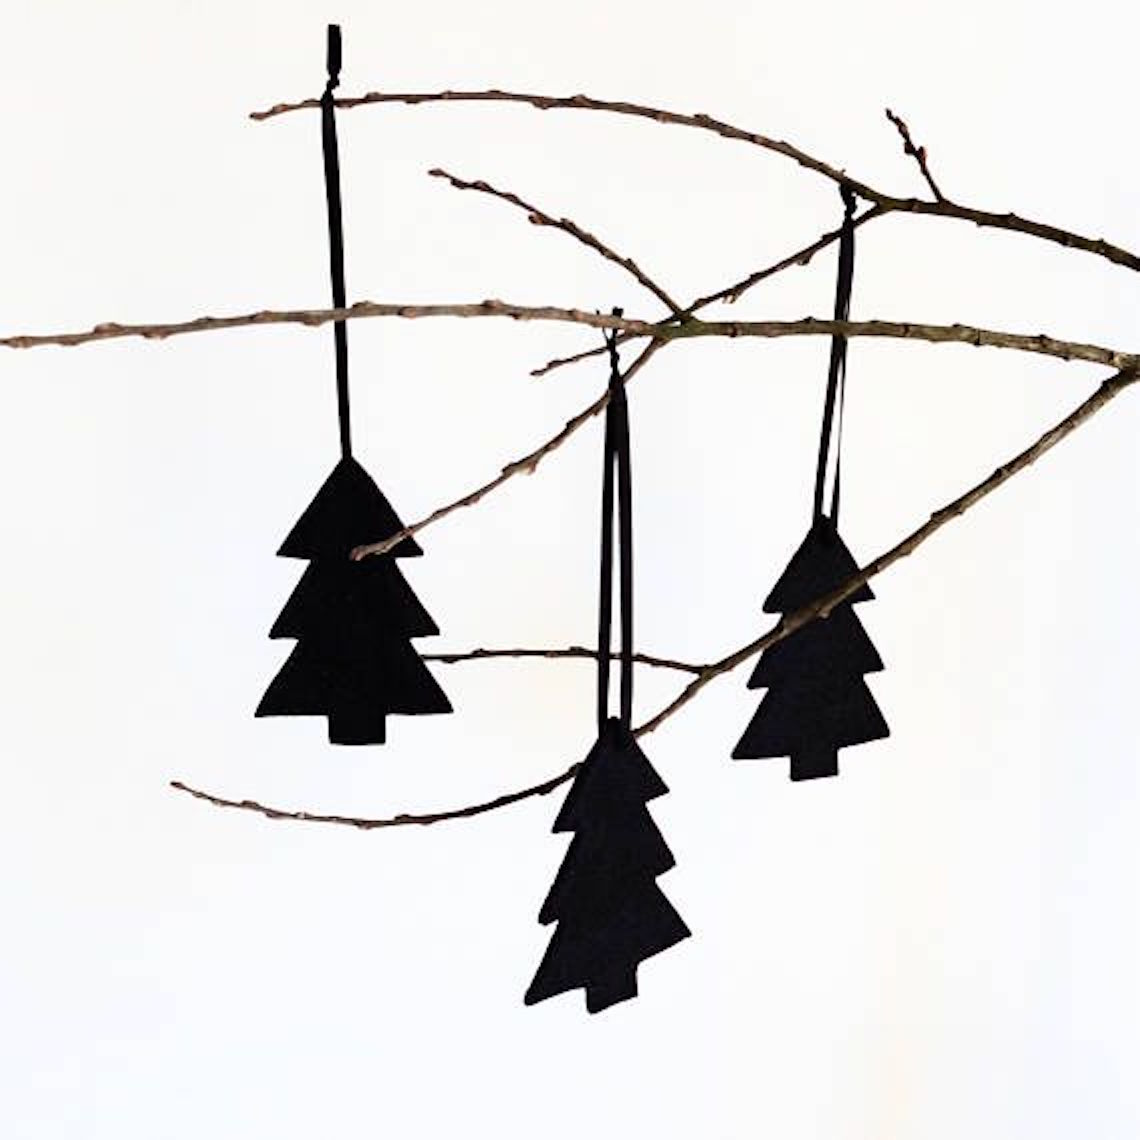 Minimalist Christmas.Minimalist Christmas Decorations From Etsy Bloom Clementine